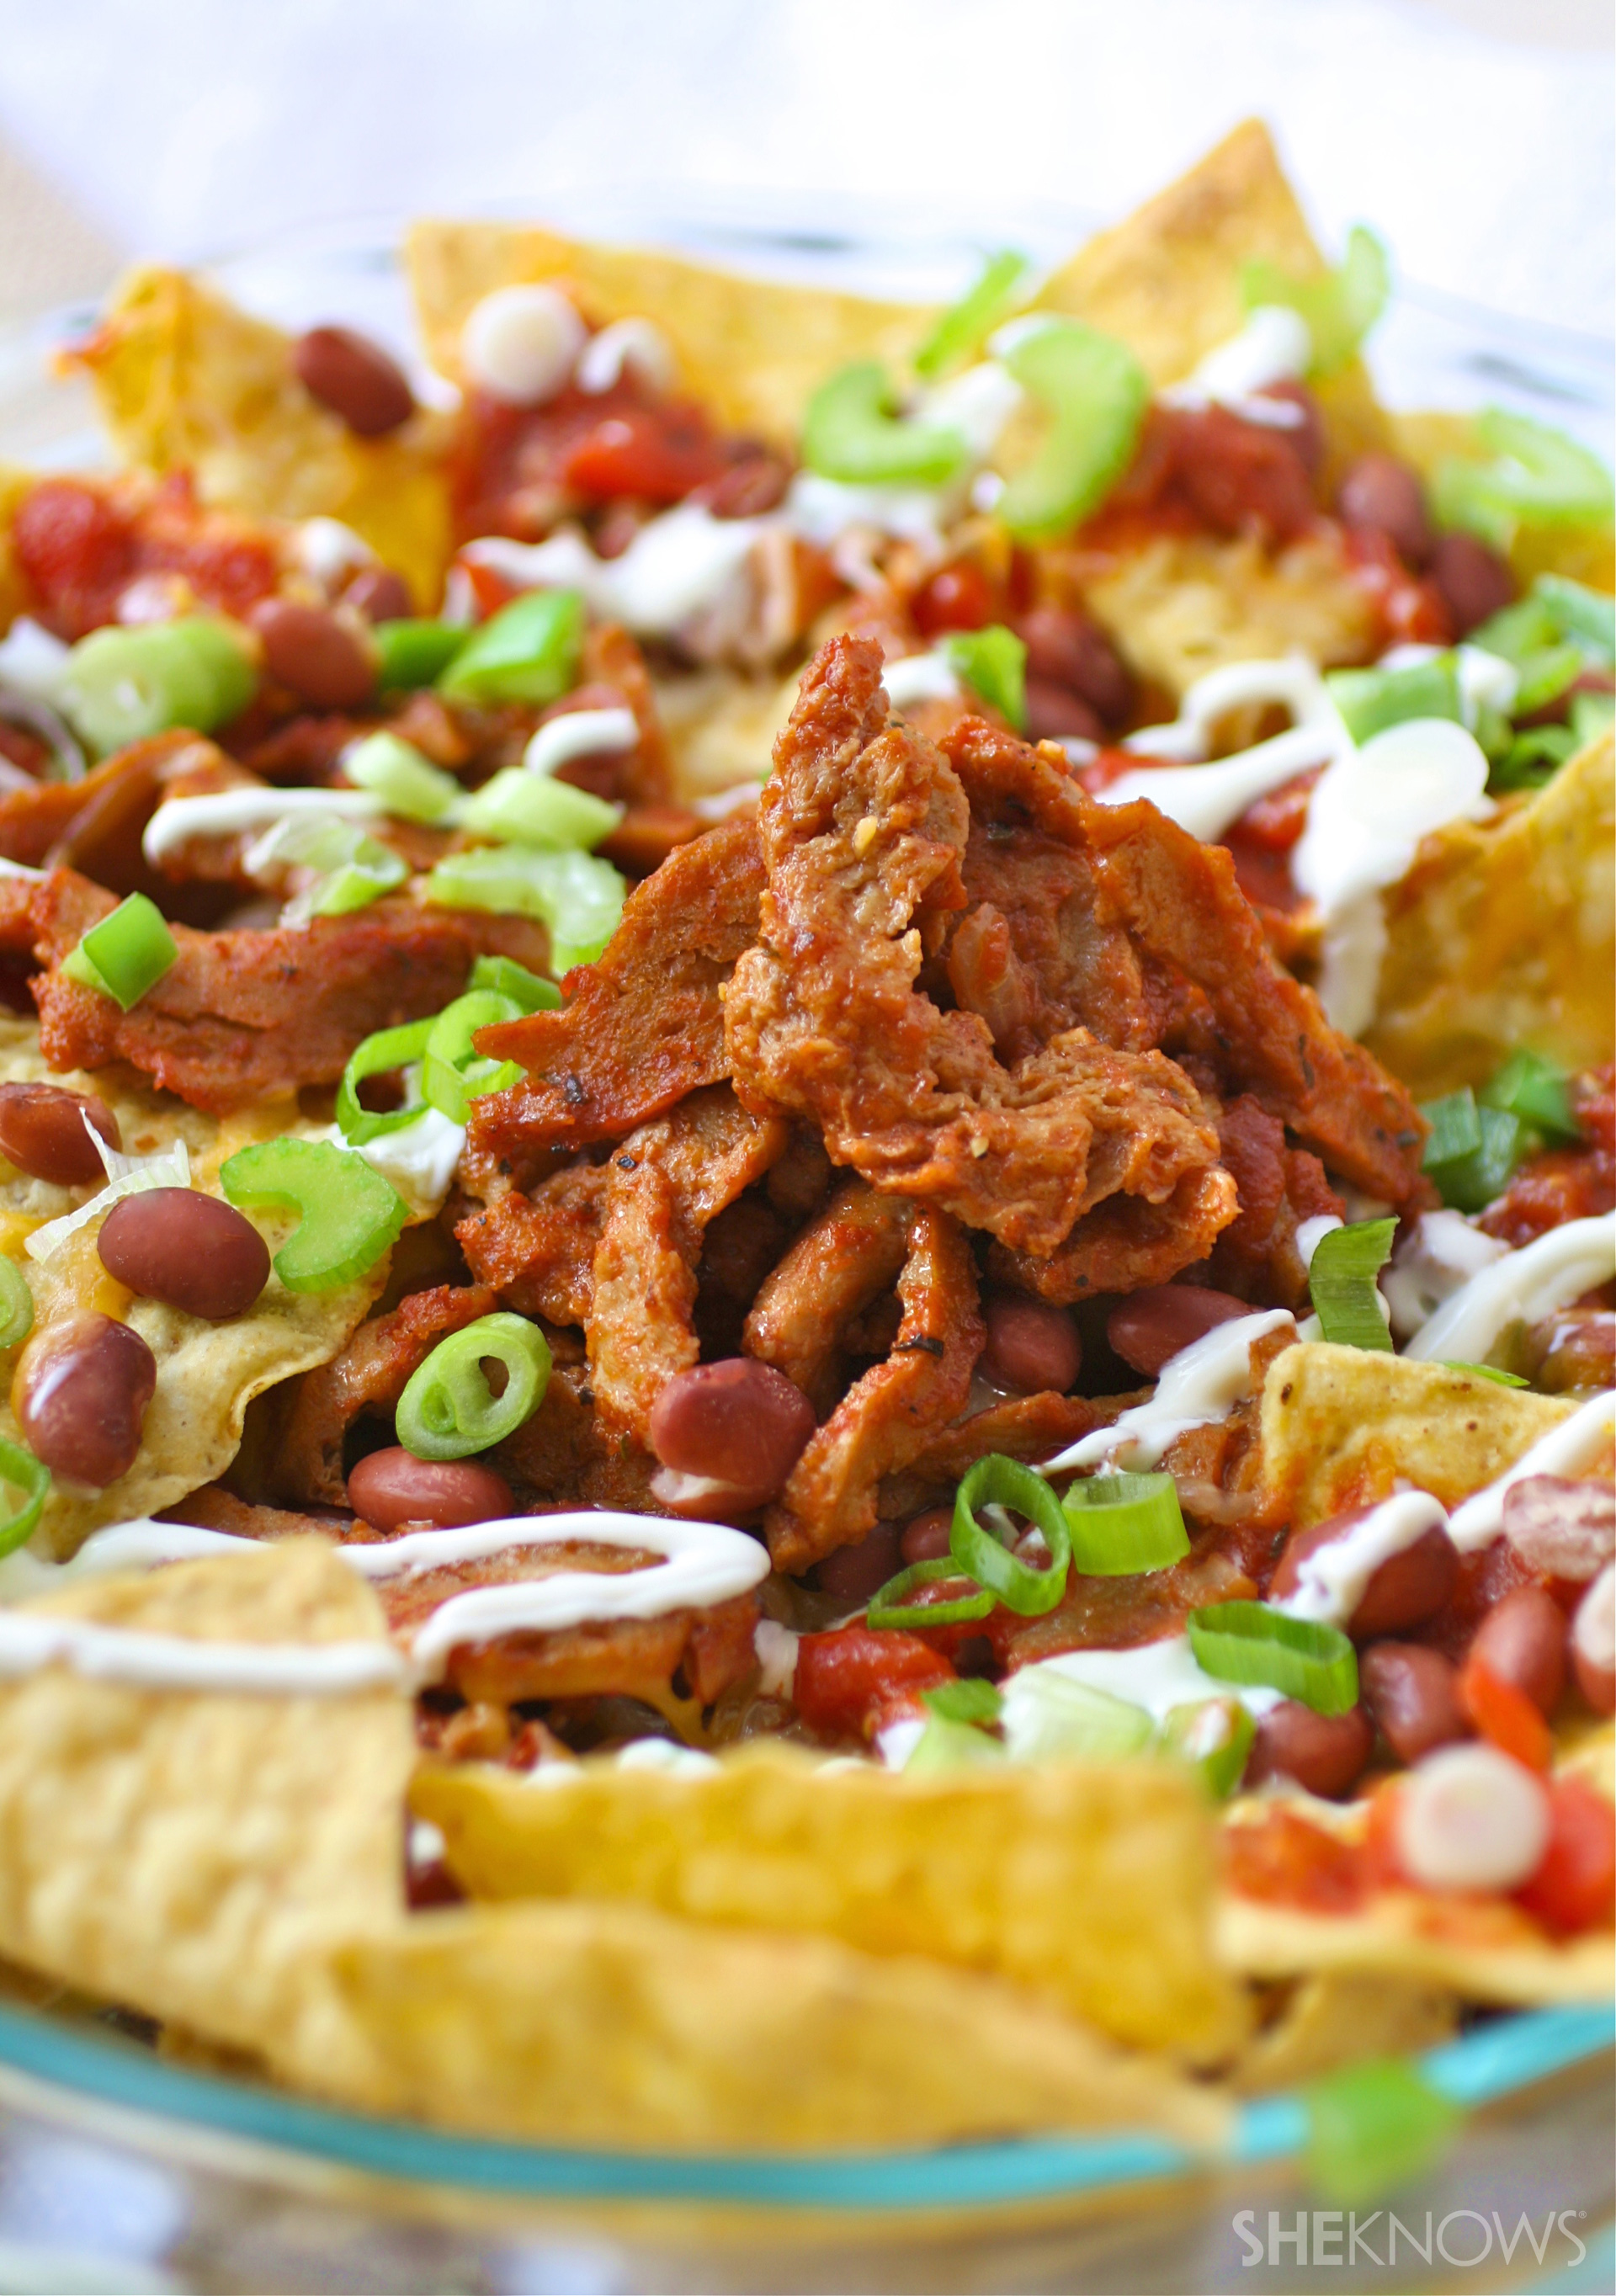 Grab the napkins and dig into meatless nachos piled high with Cajun flavor